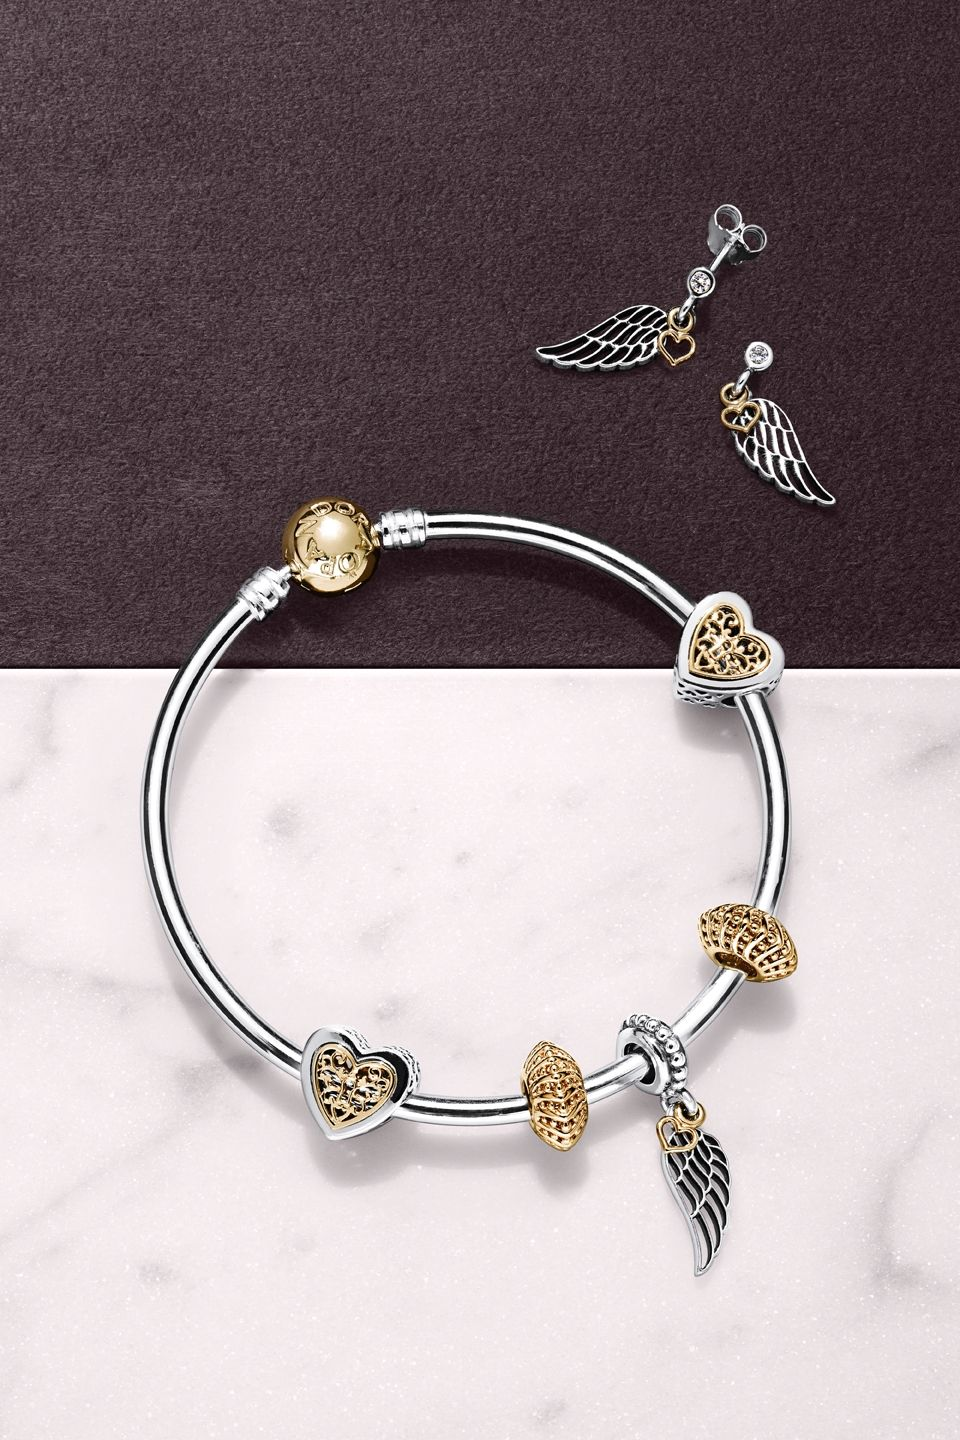 61f953c96c5 PANDORA's filigree angel wing charm and earrings with dangling 14k gold  hearts are the perfect present to represent love and guidance.